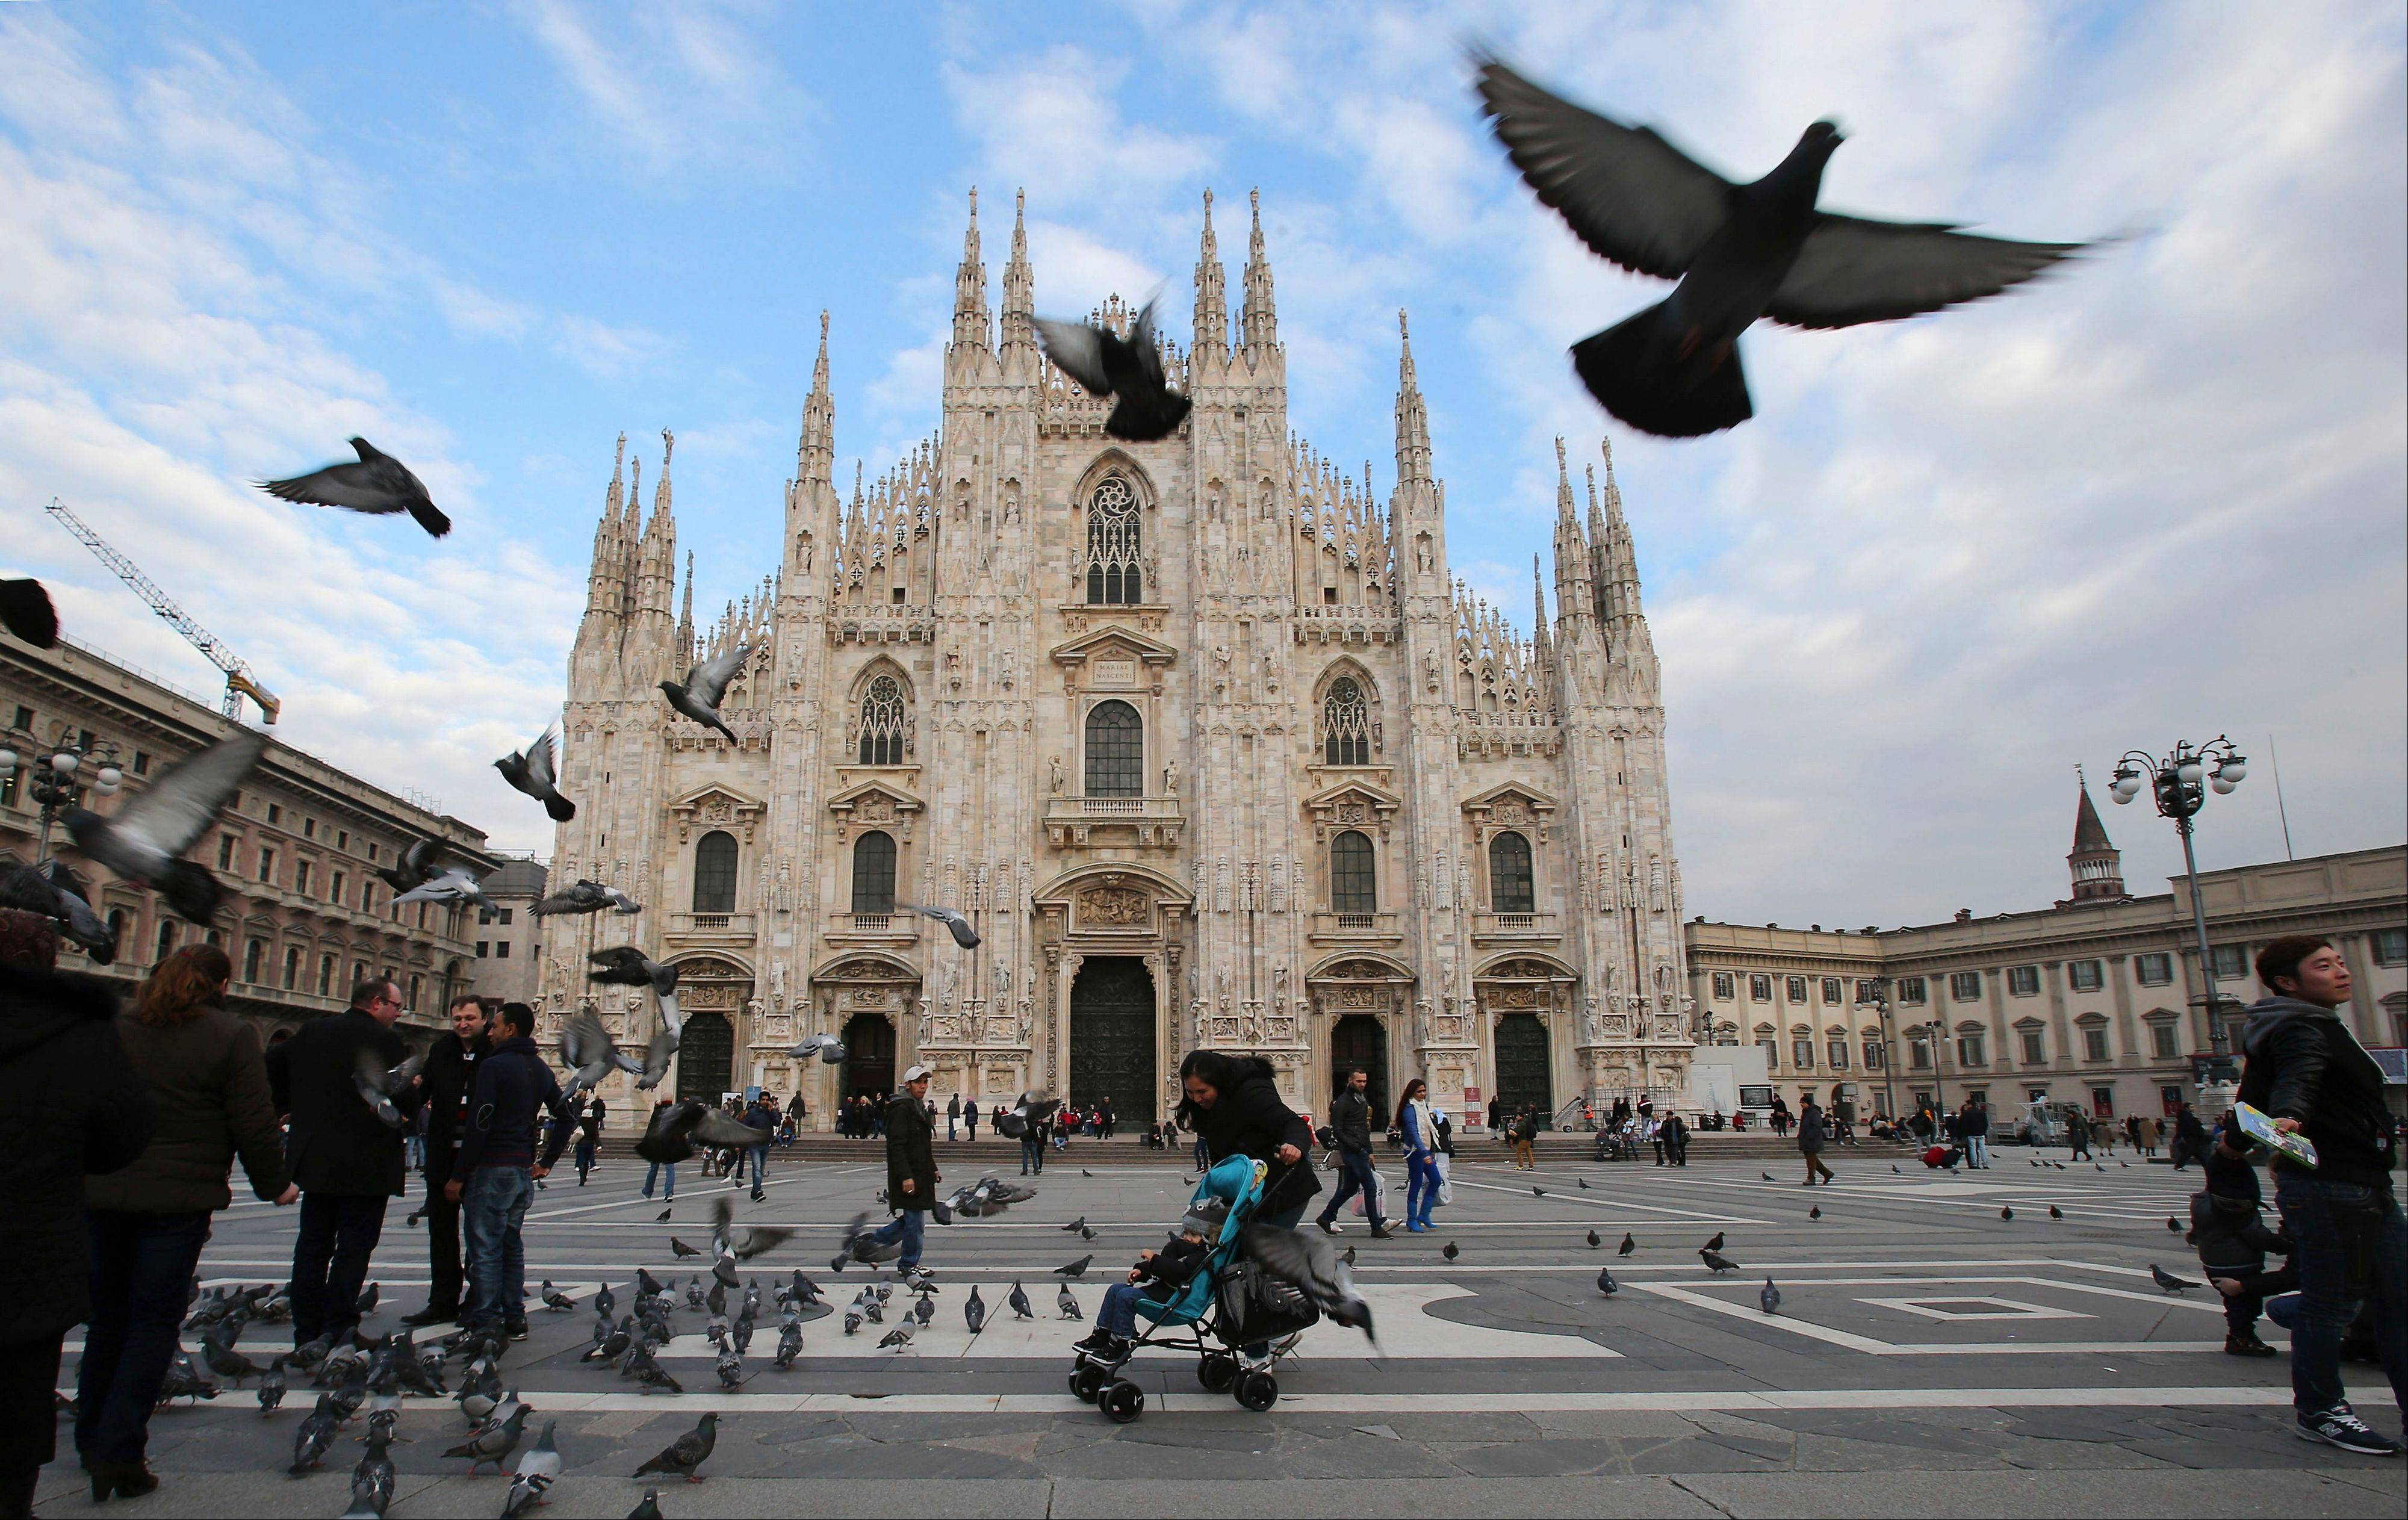 Visitors dodge birds in the piazza outside of the Duomo cathedral in Milan, Italy. The ornate white facade of Milan's Duomo is the single most recognized symbol of the Lombard capital, taking centuries to complete.